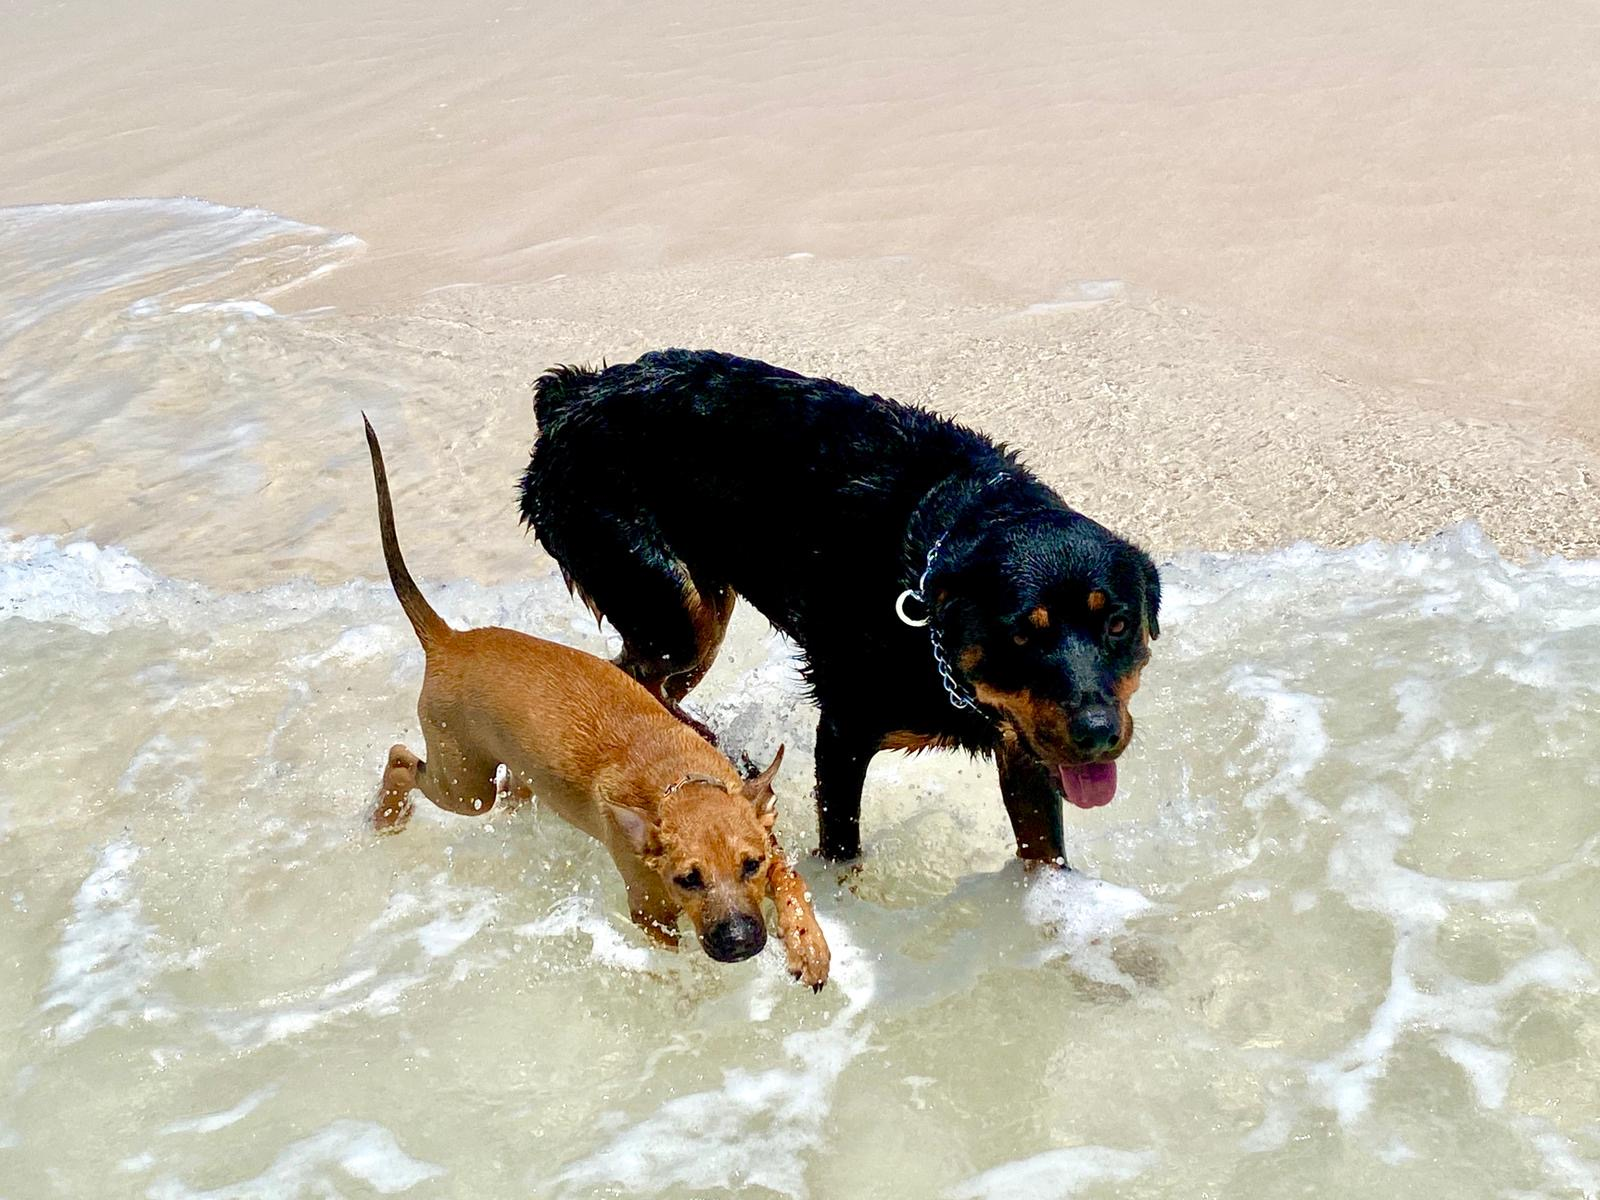 An AARF rescue puppy plays in the ocean with a larger dog